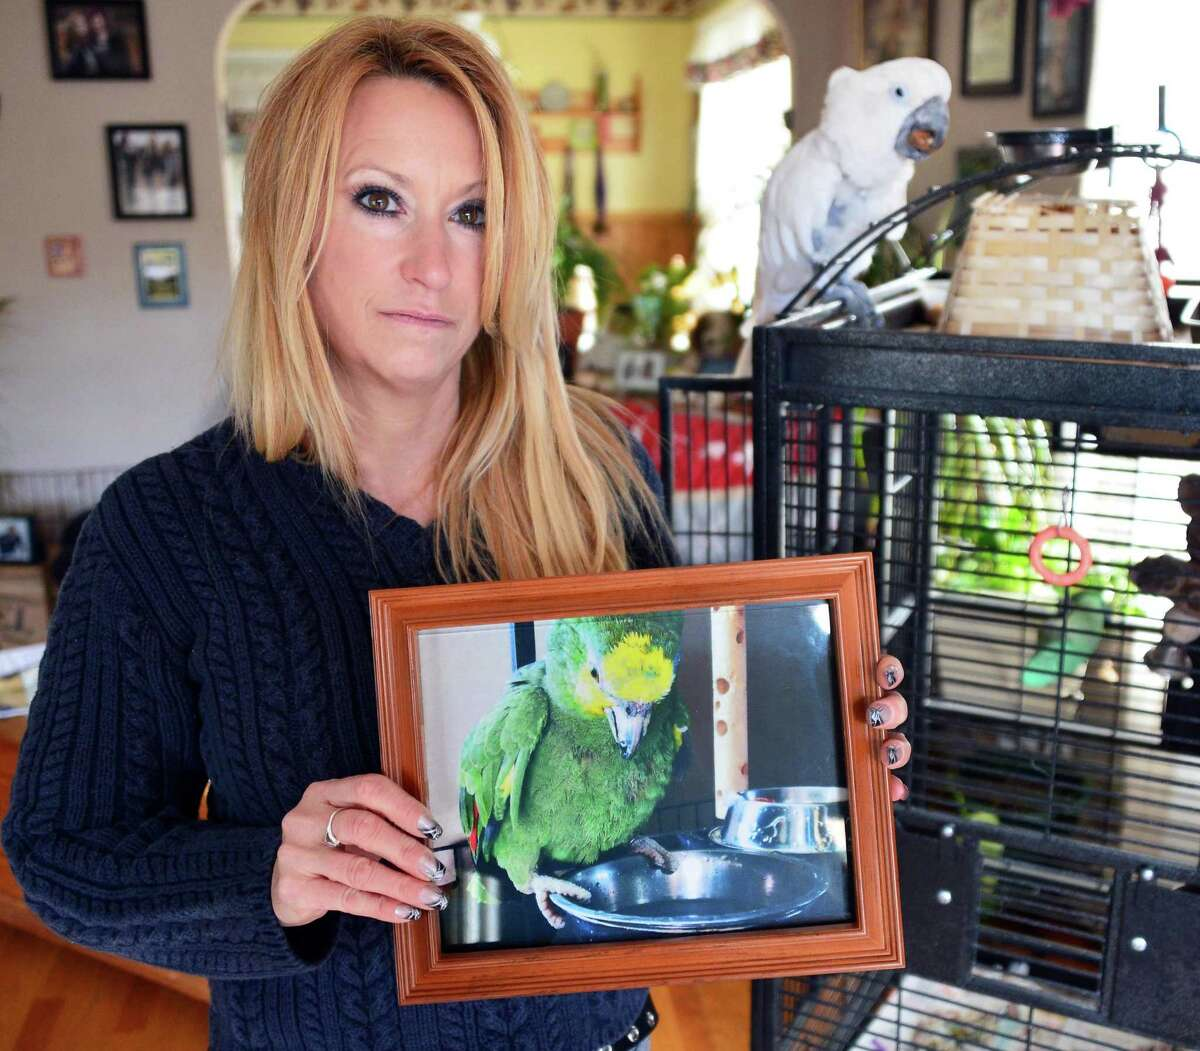 Cathy Komertz holds a photograph of her lost Orange-winged Amazon parrot called Pete Tuesday, Nov. 19, 2013, in Cohoes, NY. At right is her Cockatoo named Homer. (John Carl D'Annibale / Times Union)